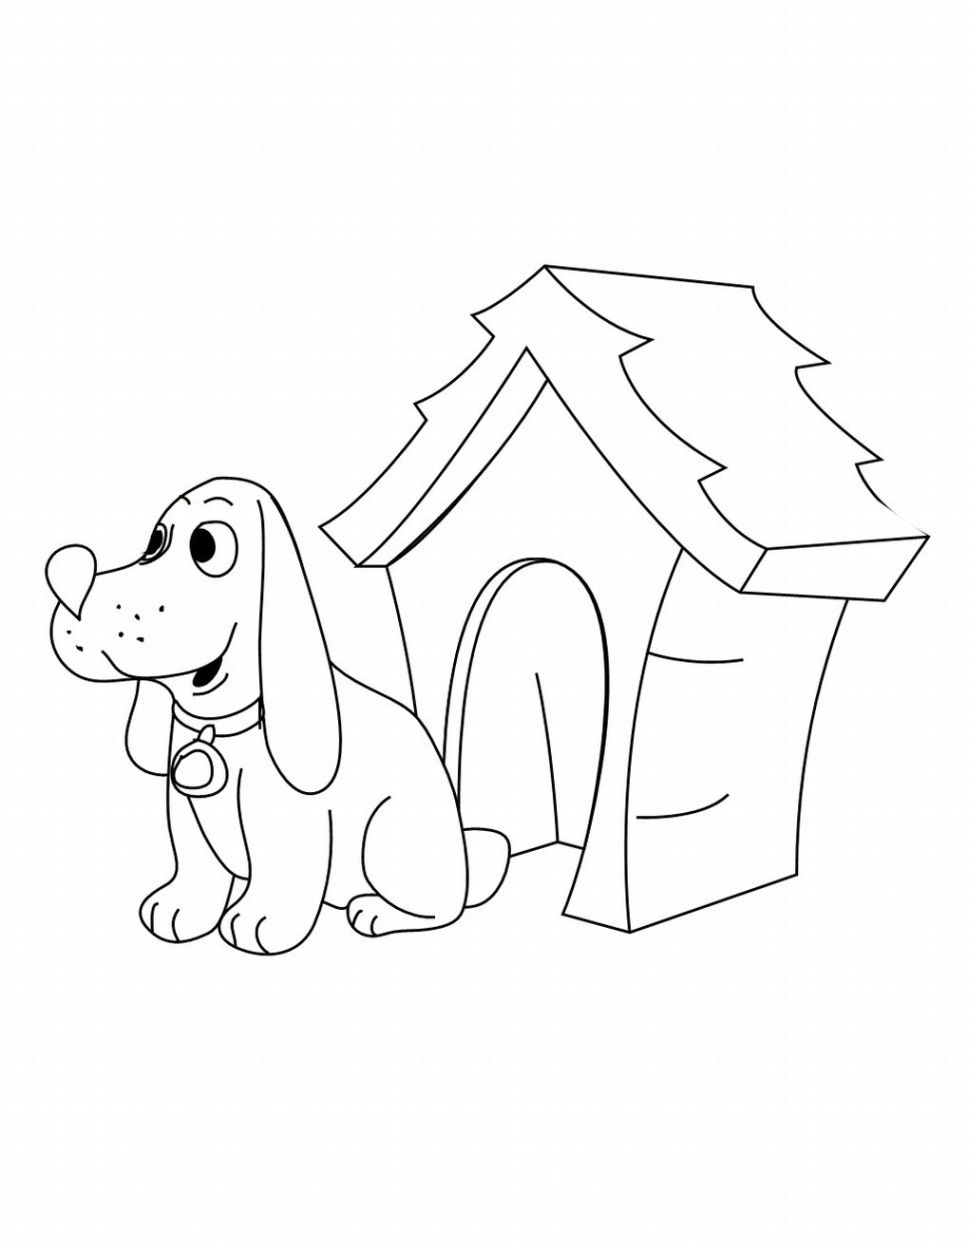 animal homes coloring pages | Print Design / Articles / free printable clifford the big ...